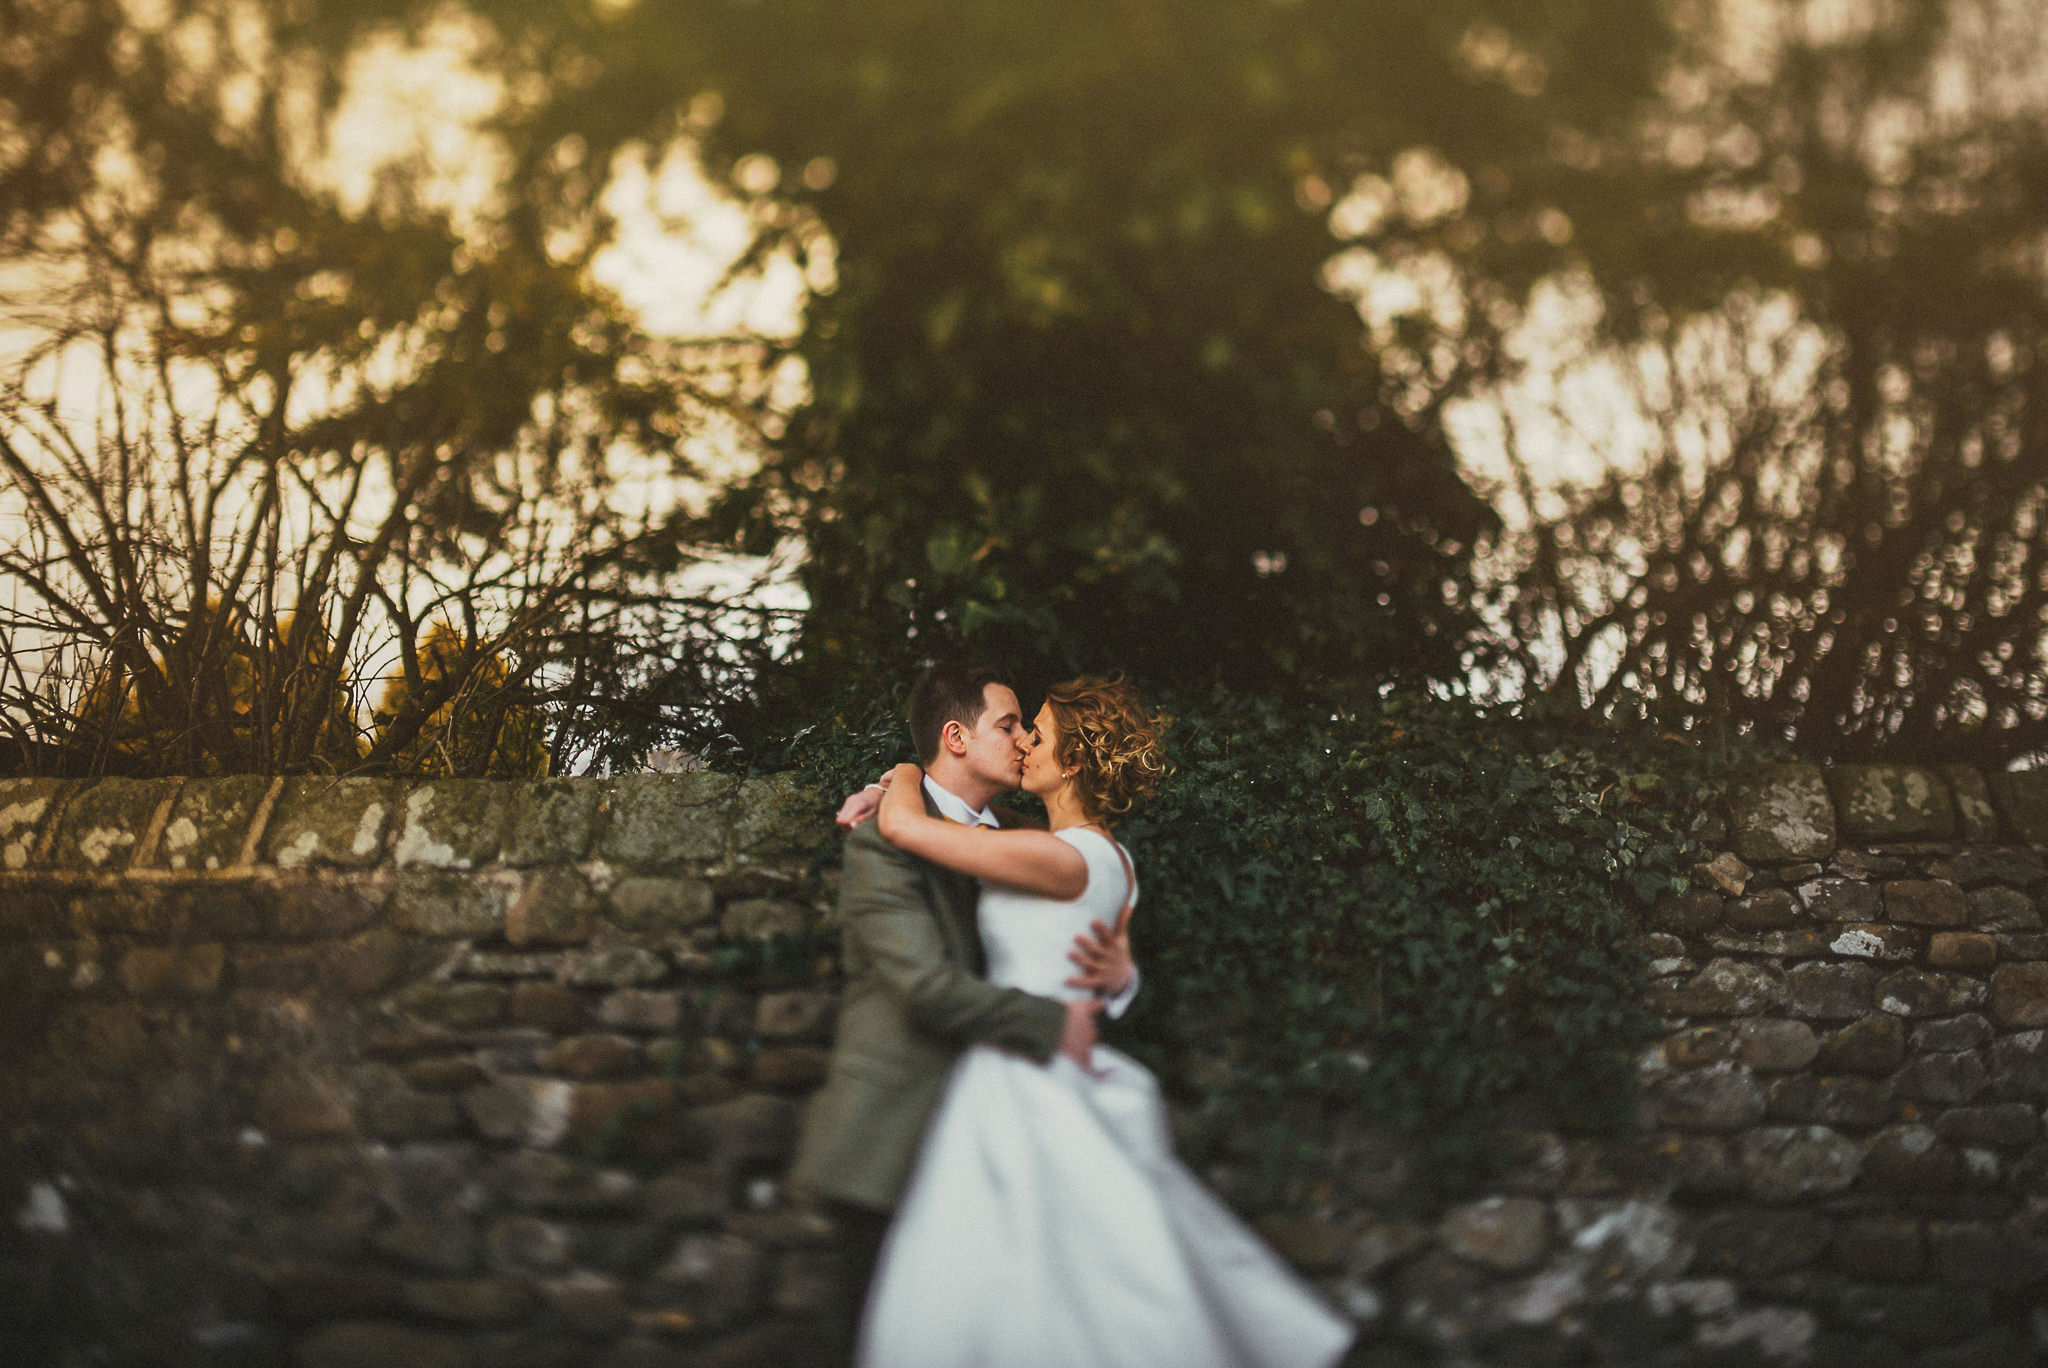 paul-marbrook-best-wedding-photographer-north-wales-048128